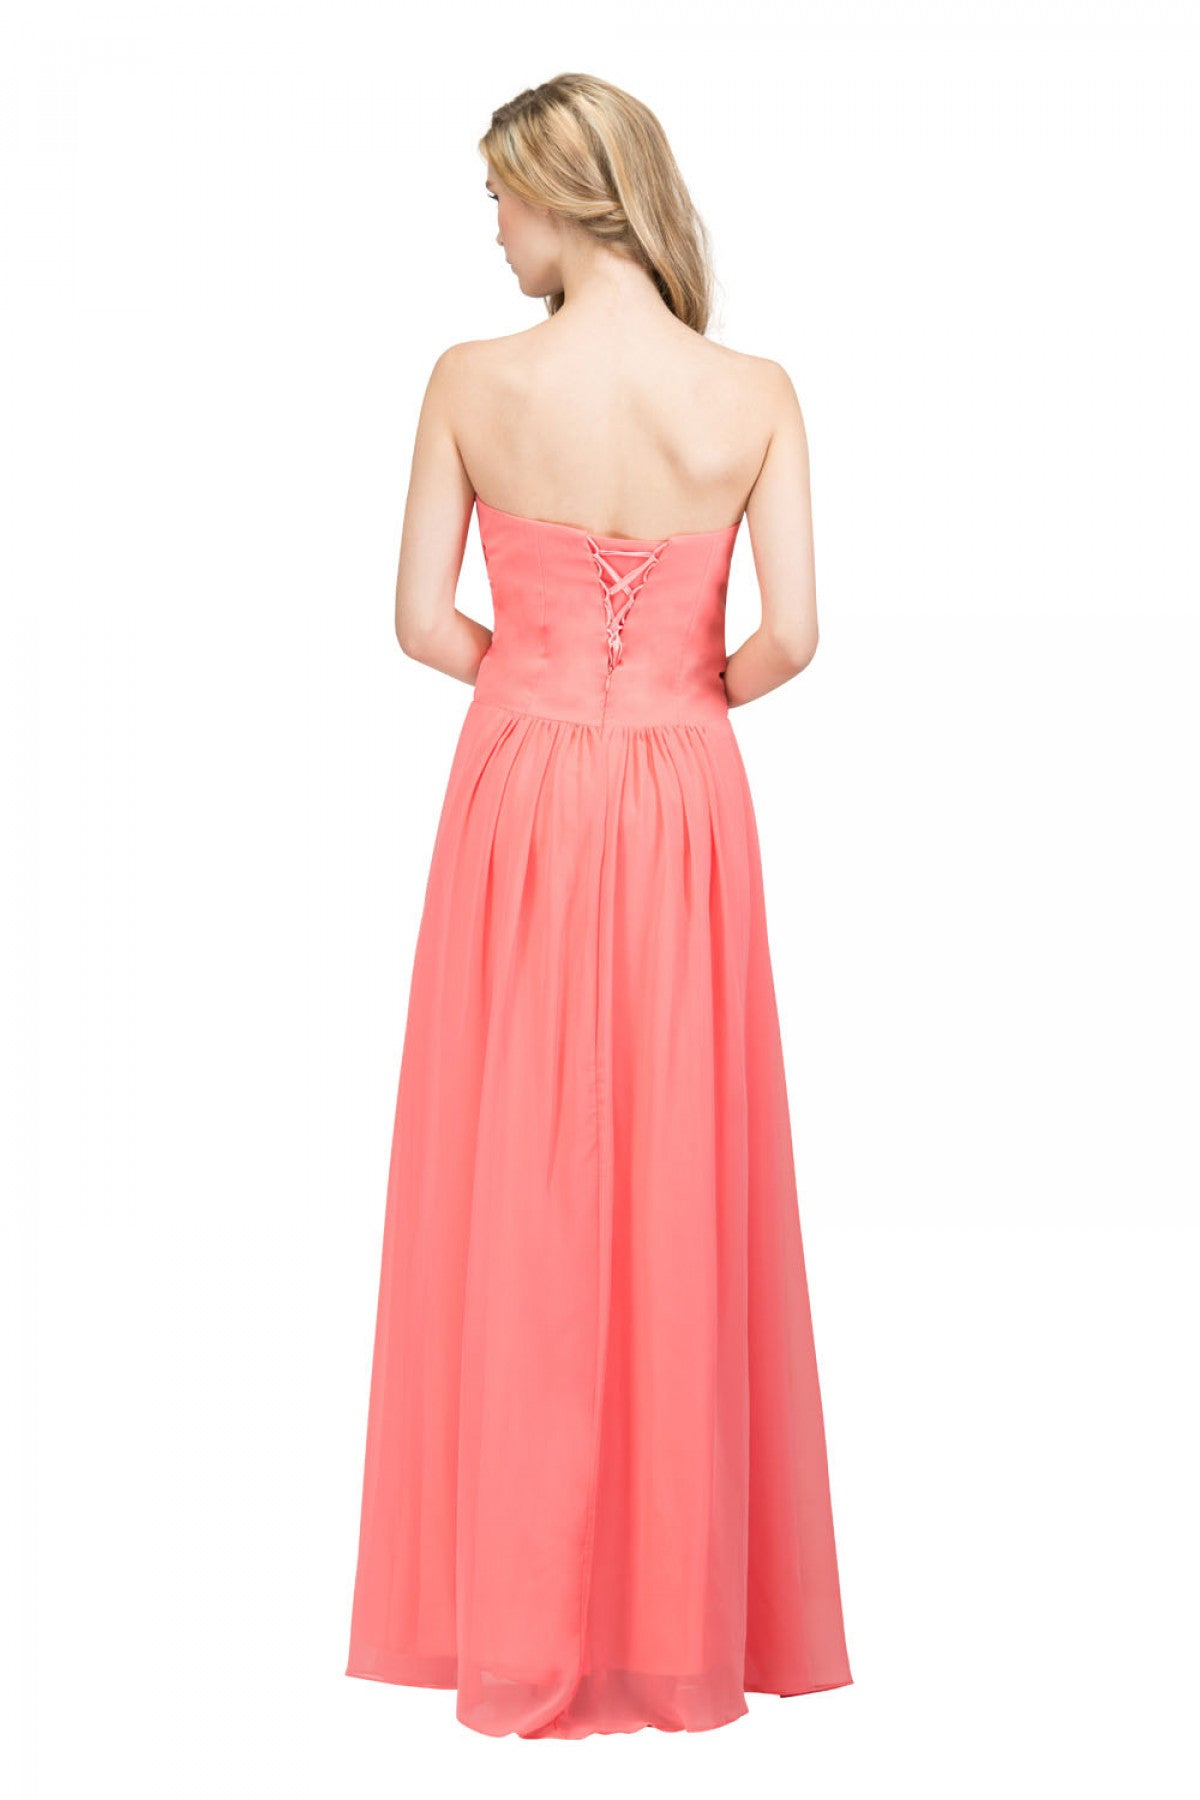 d2f8eb730c ... Starbox USA L6126 Sweetheart Ruched Chiffon Coral Bridesmaid Dress Back  View ...